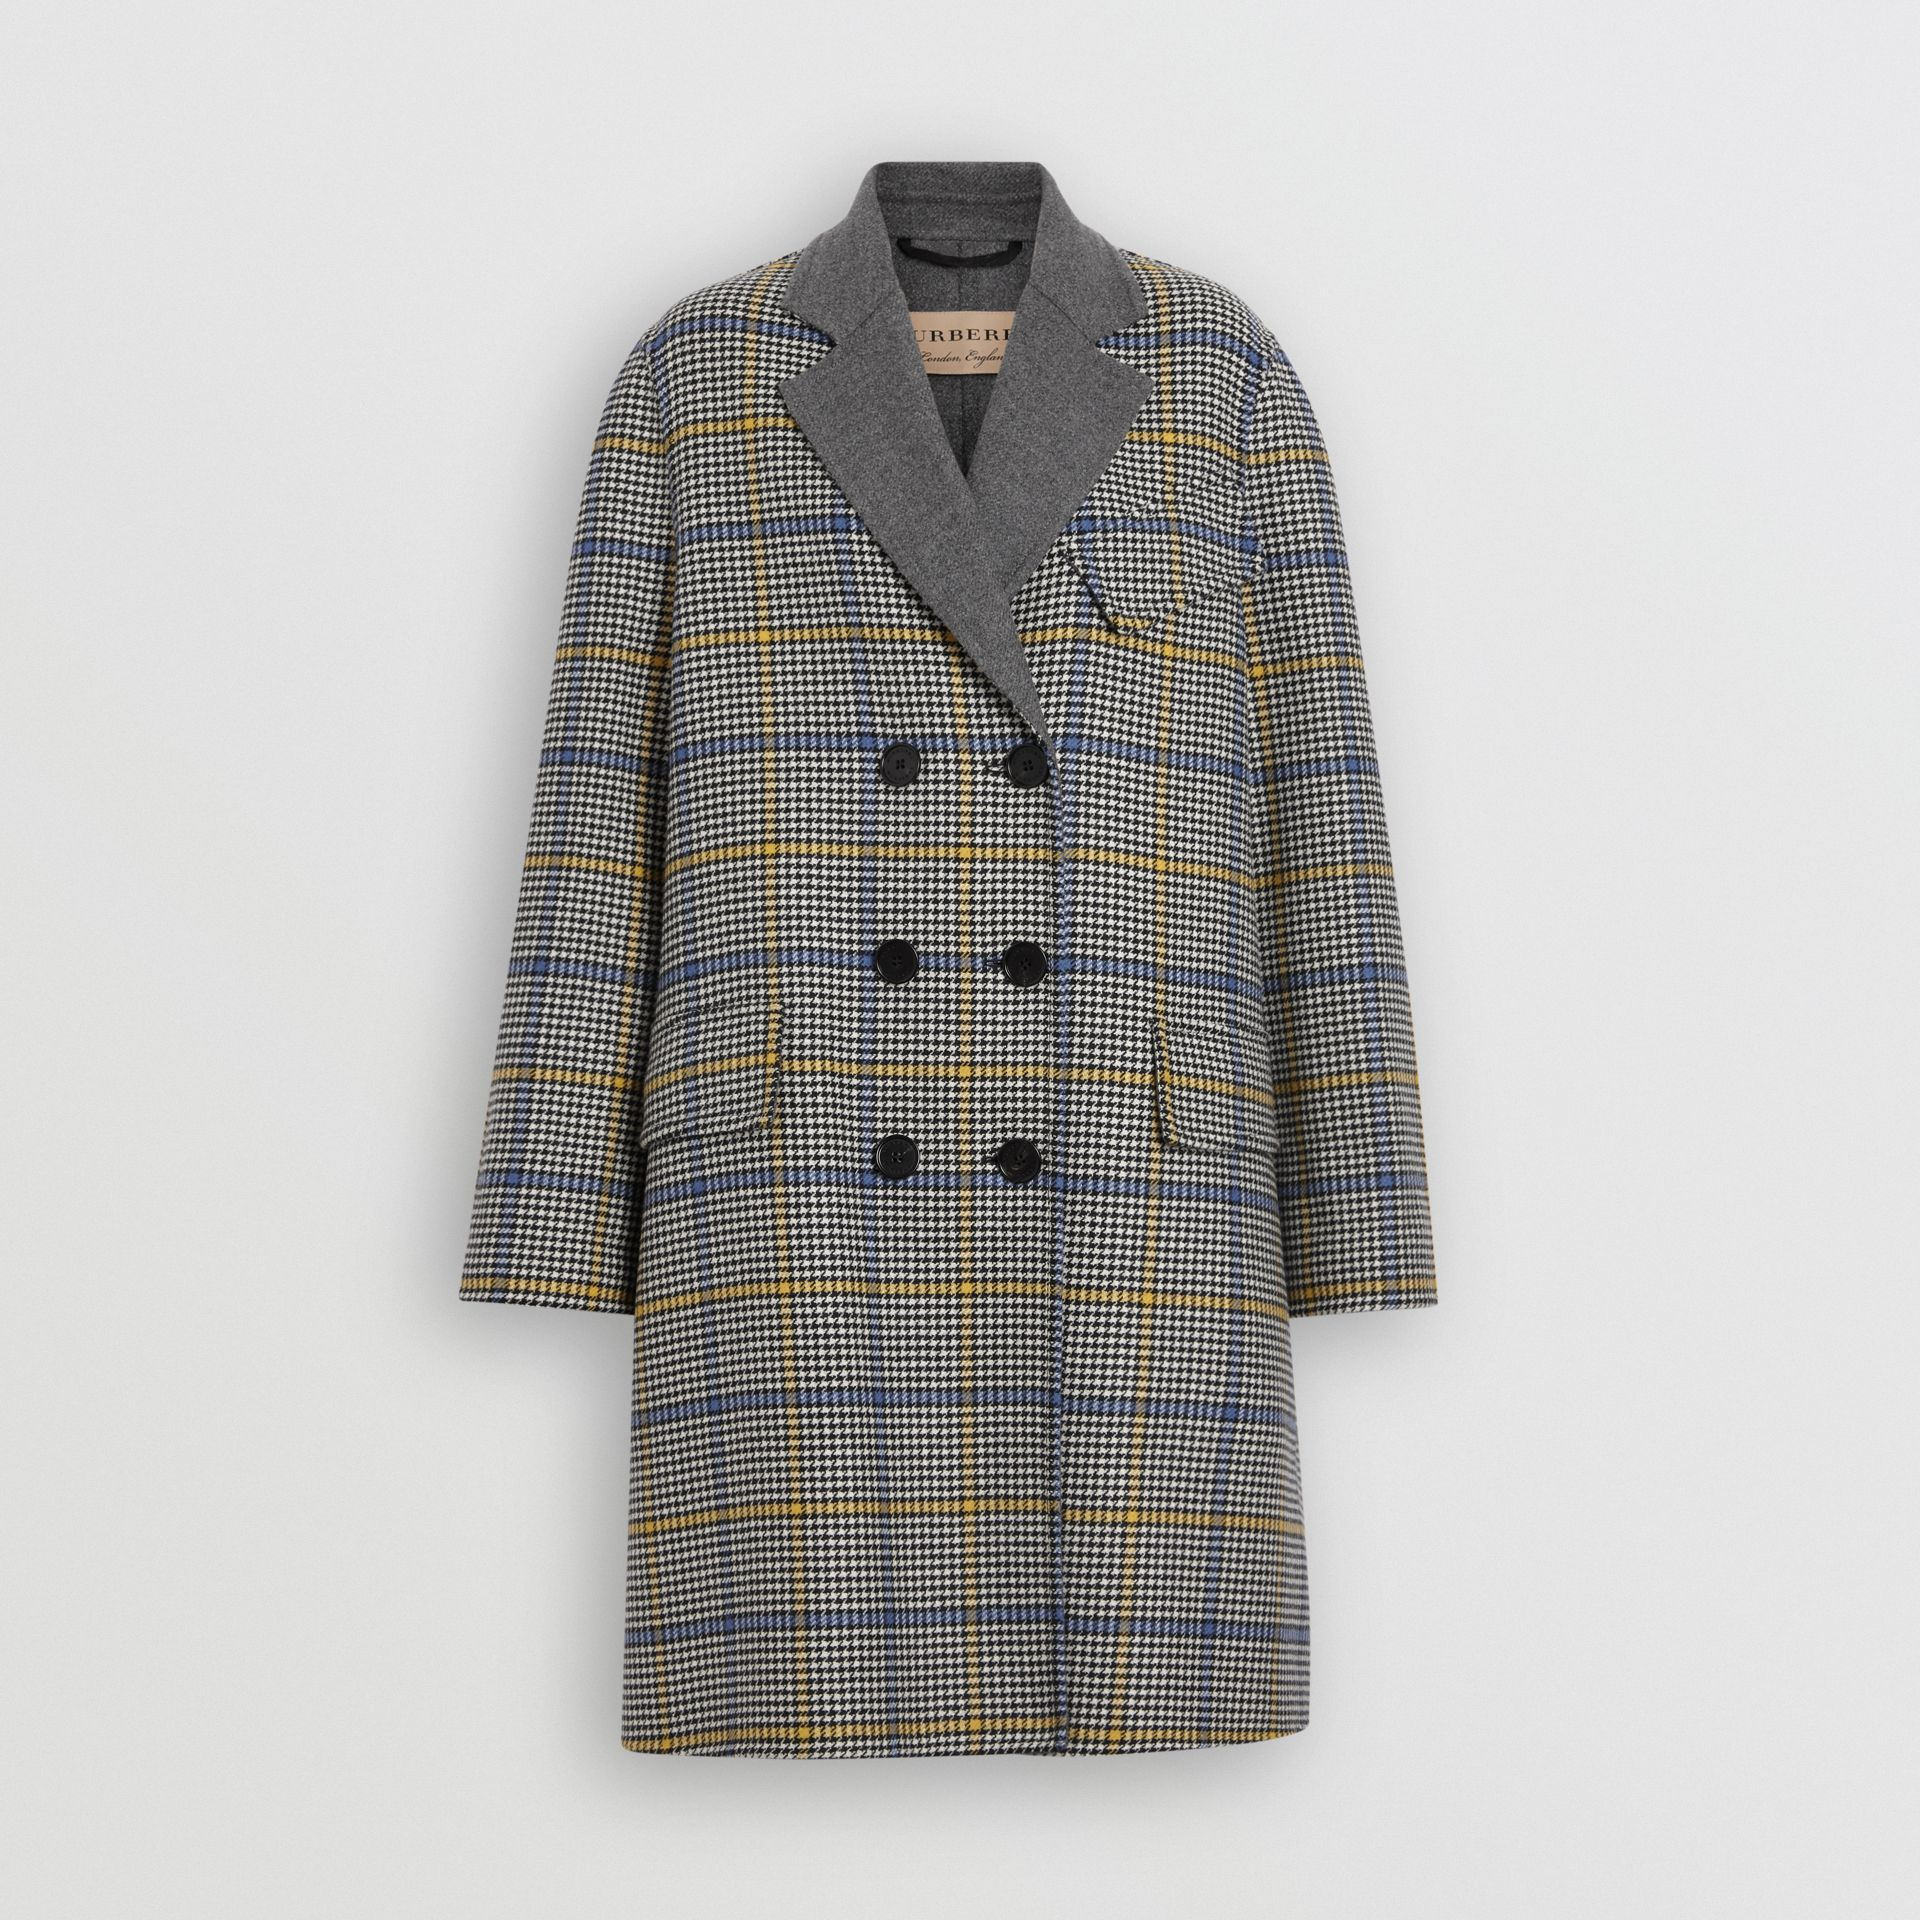 Manteau en laine et cachemire double face à motif check (Parchemin) - Femme | Burberry - photo de la galerie 3